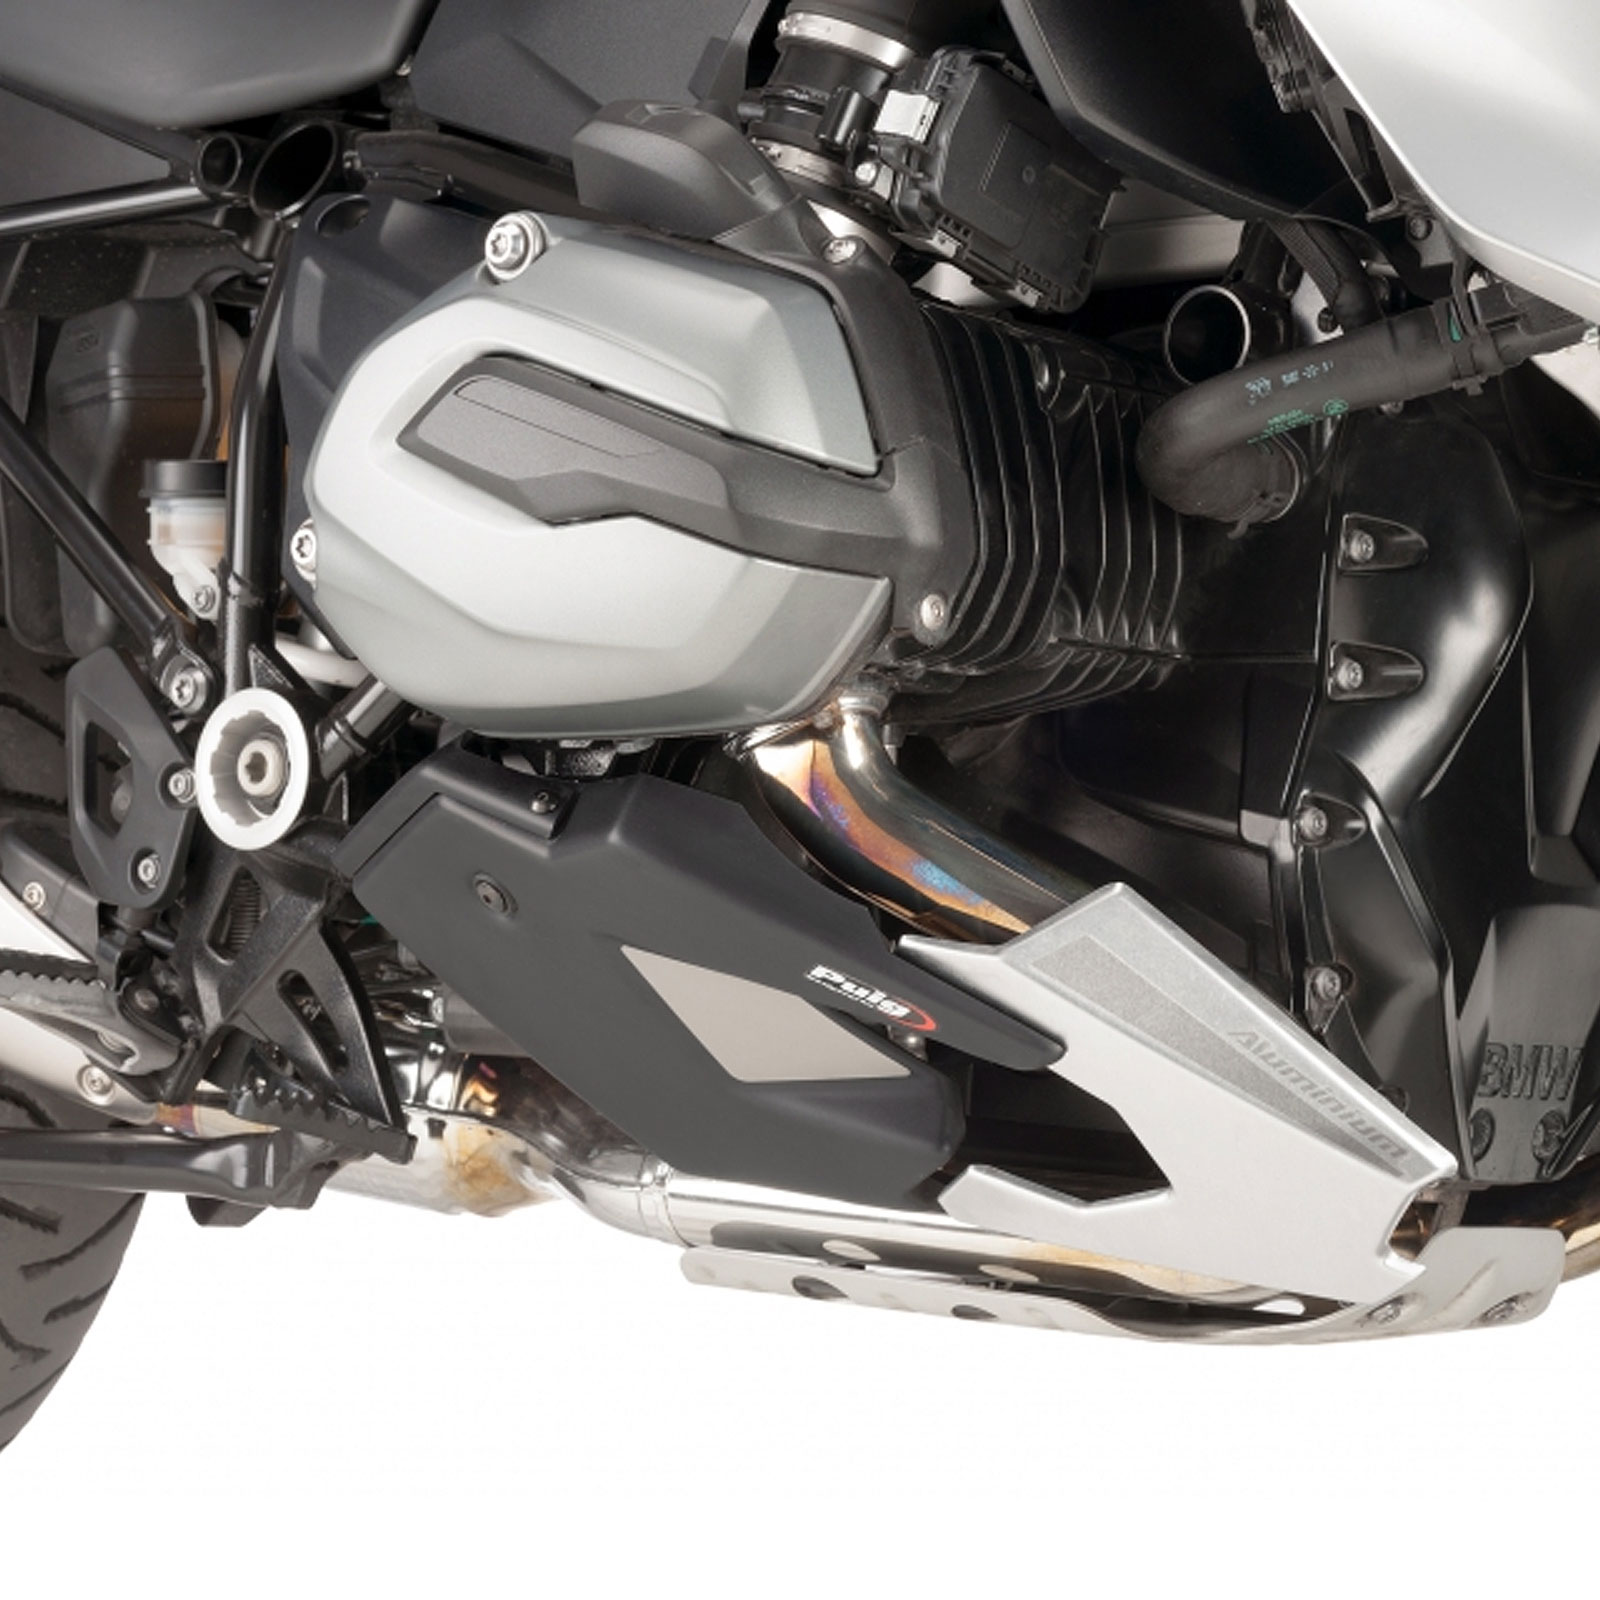 Engine Belly Pan : Bmw r gs  motorcycle engine belly pan